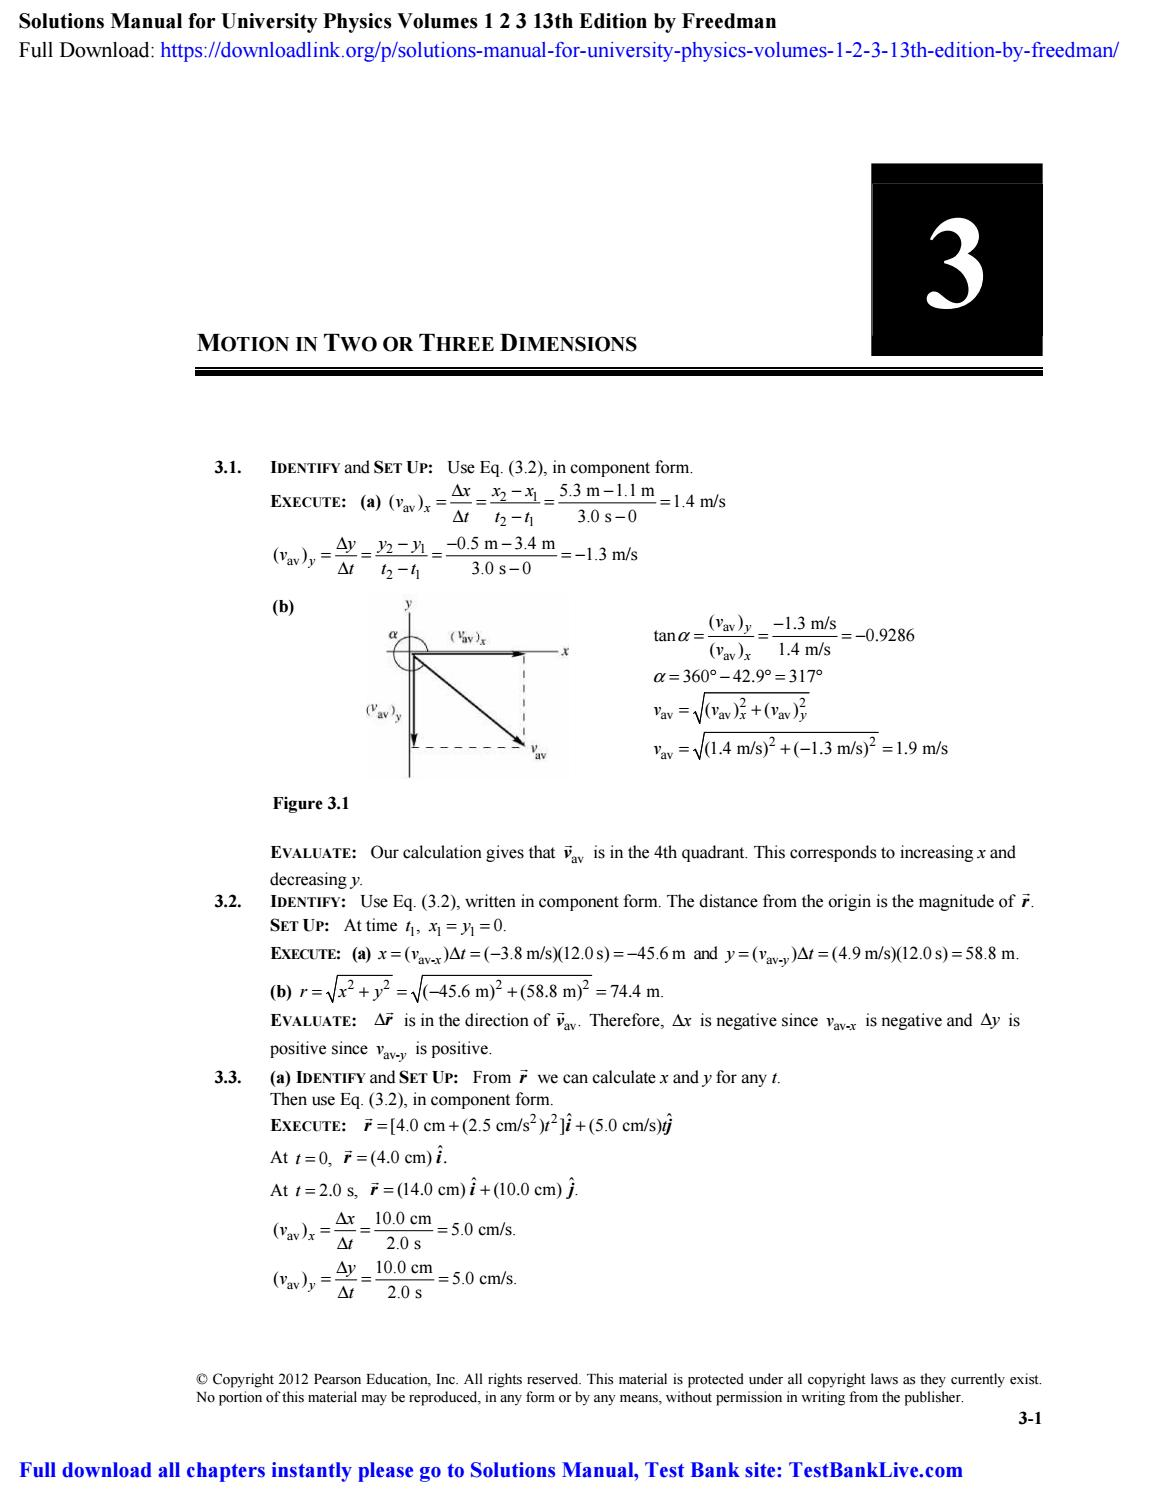 Solutions Manual For University Physics Volumes 1 2 3 13th Edition By Freedman By Channing Issuu